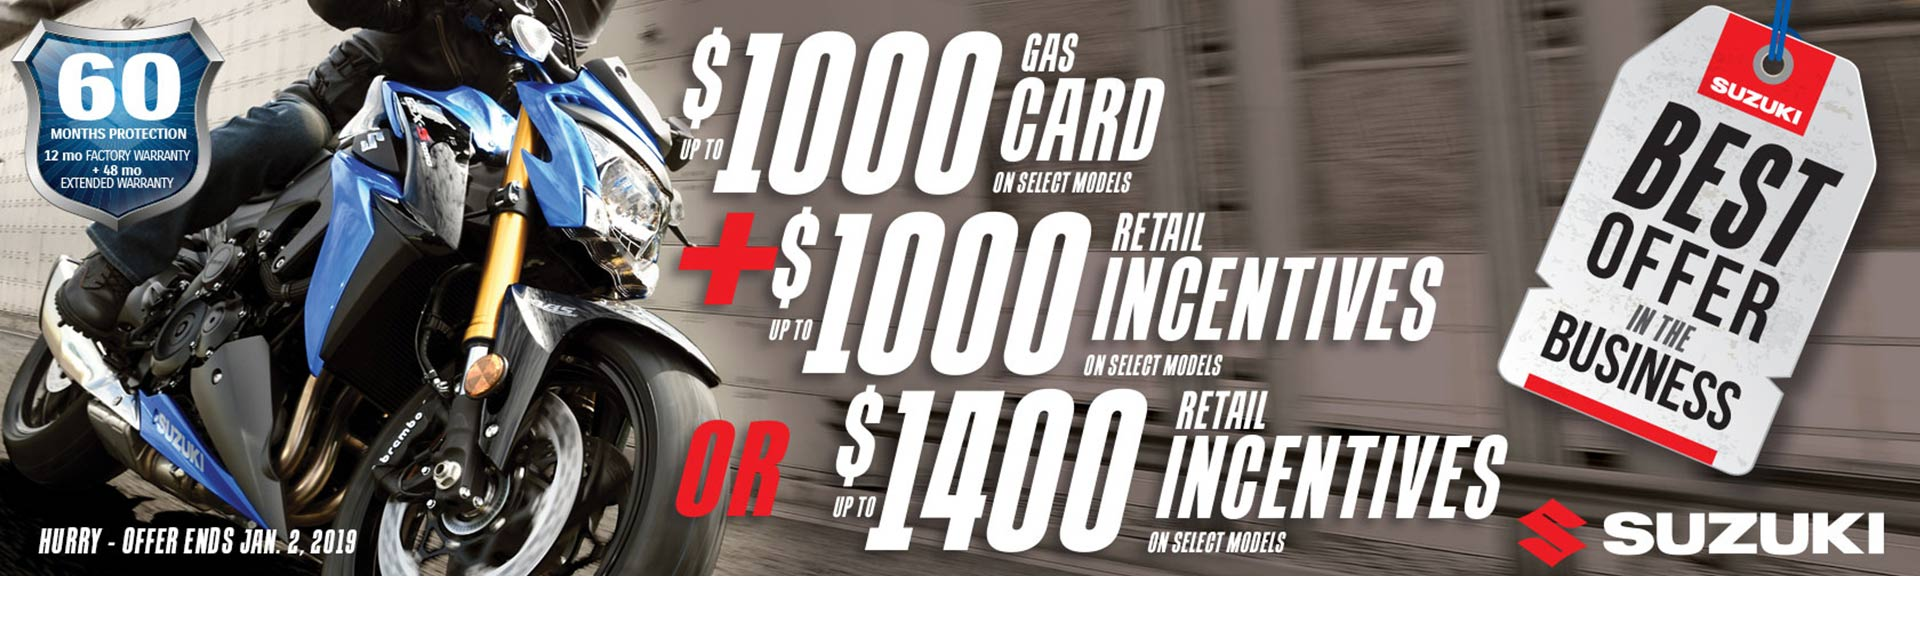 Suzuki Fuel the Ride Fall Savings - Motorcycle